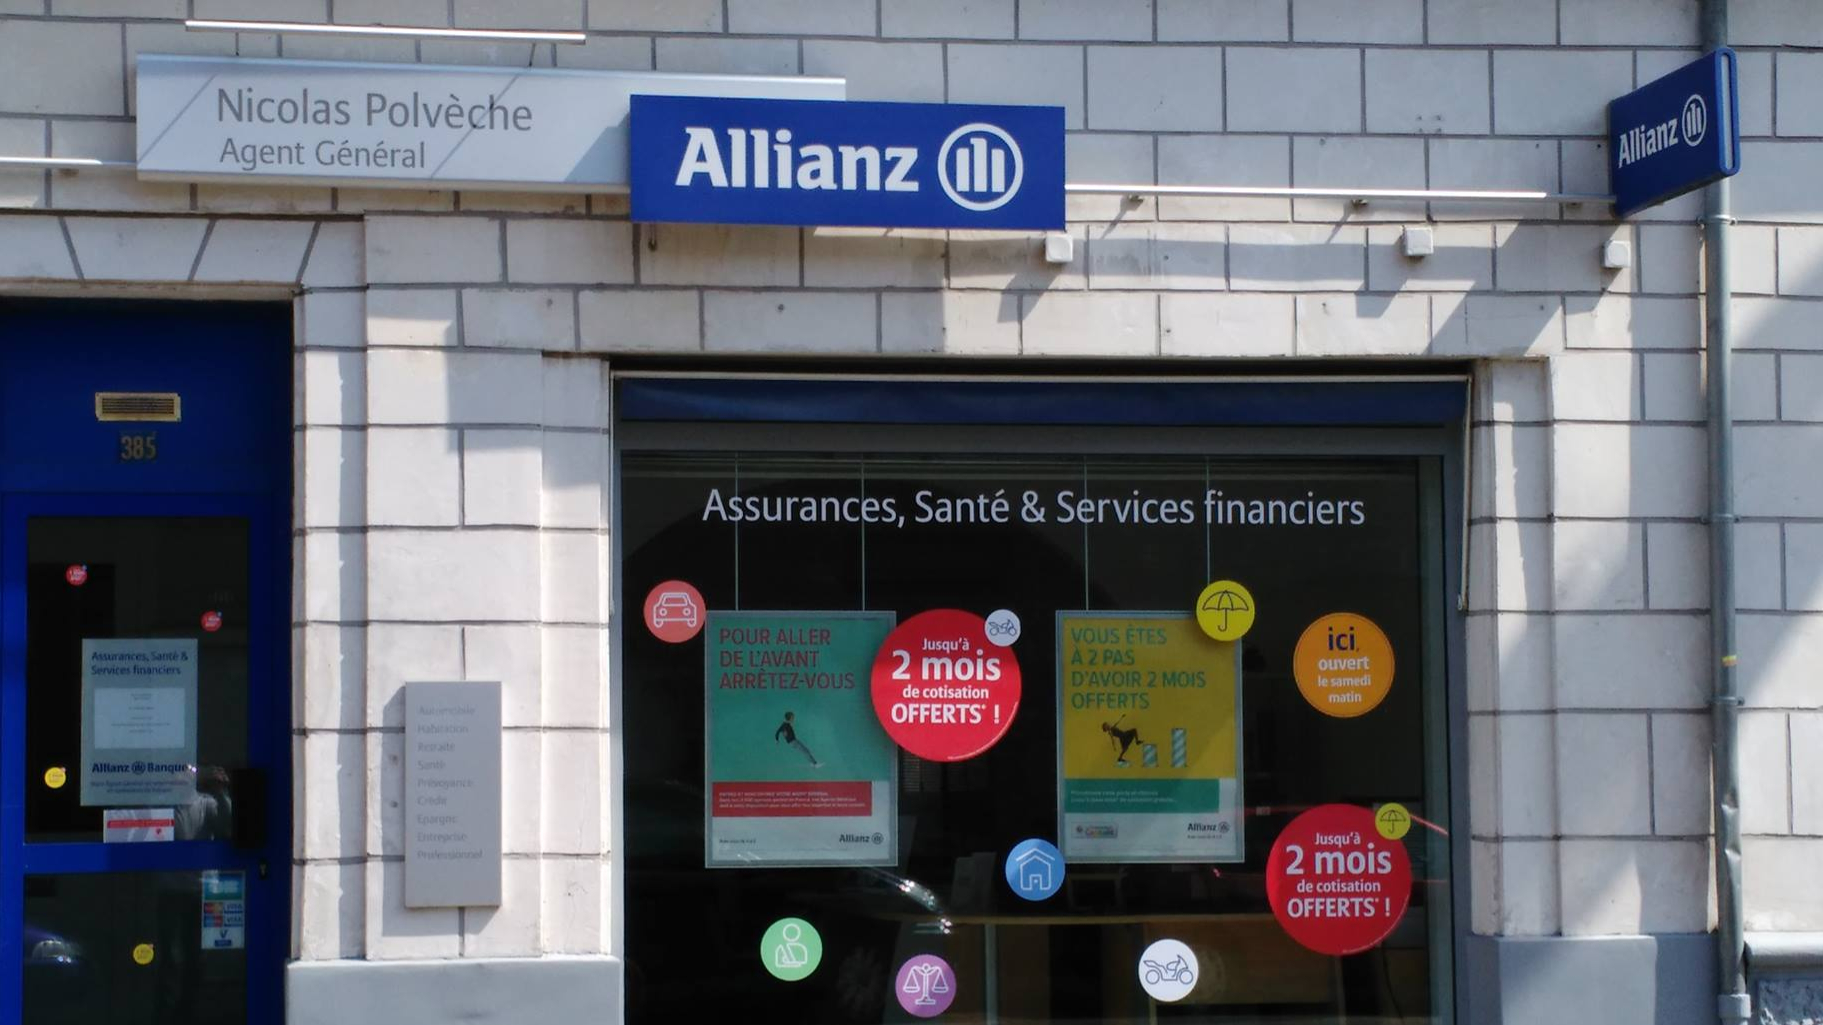 Allianz Bethune sully - Nicolas POLVECHE